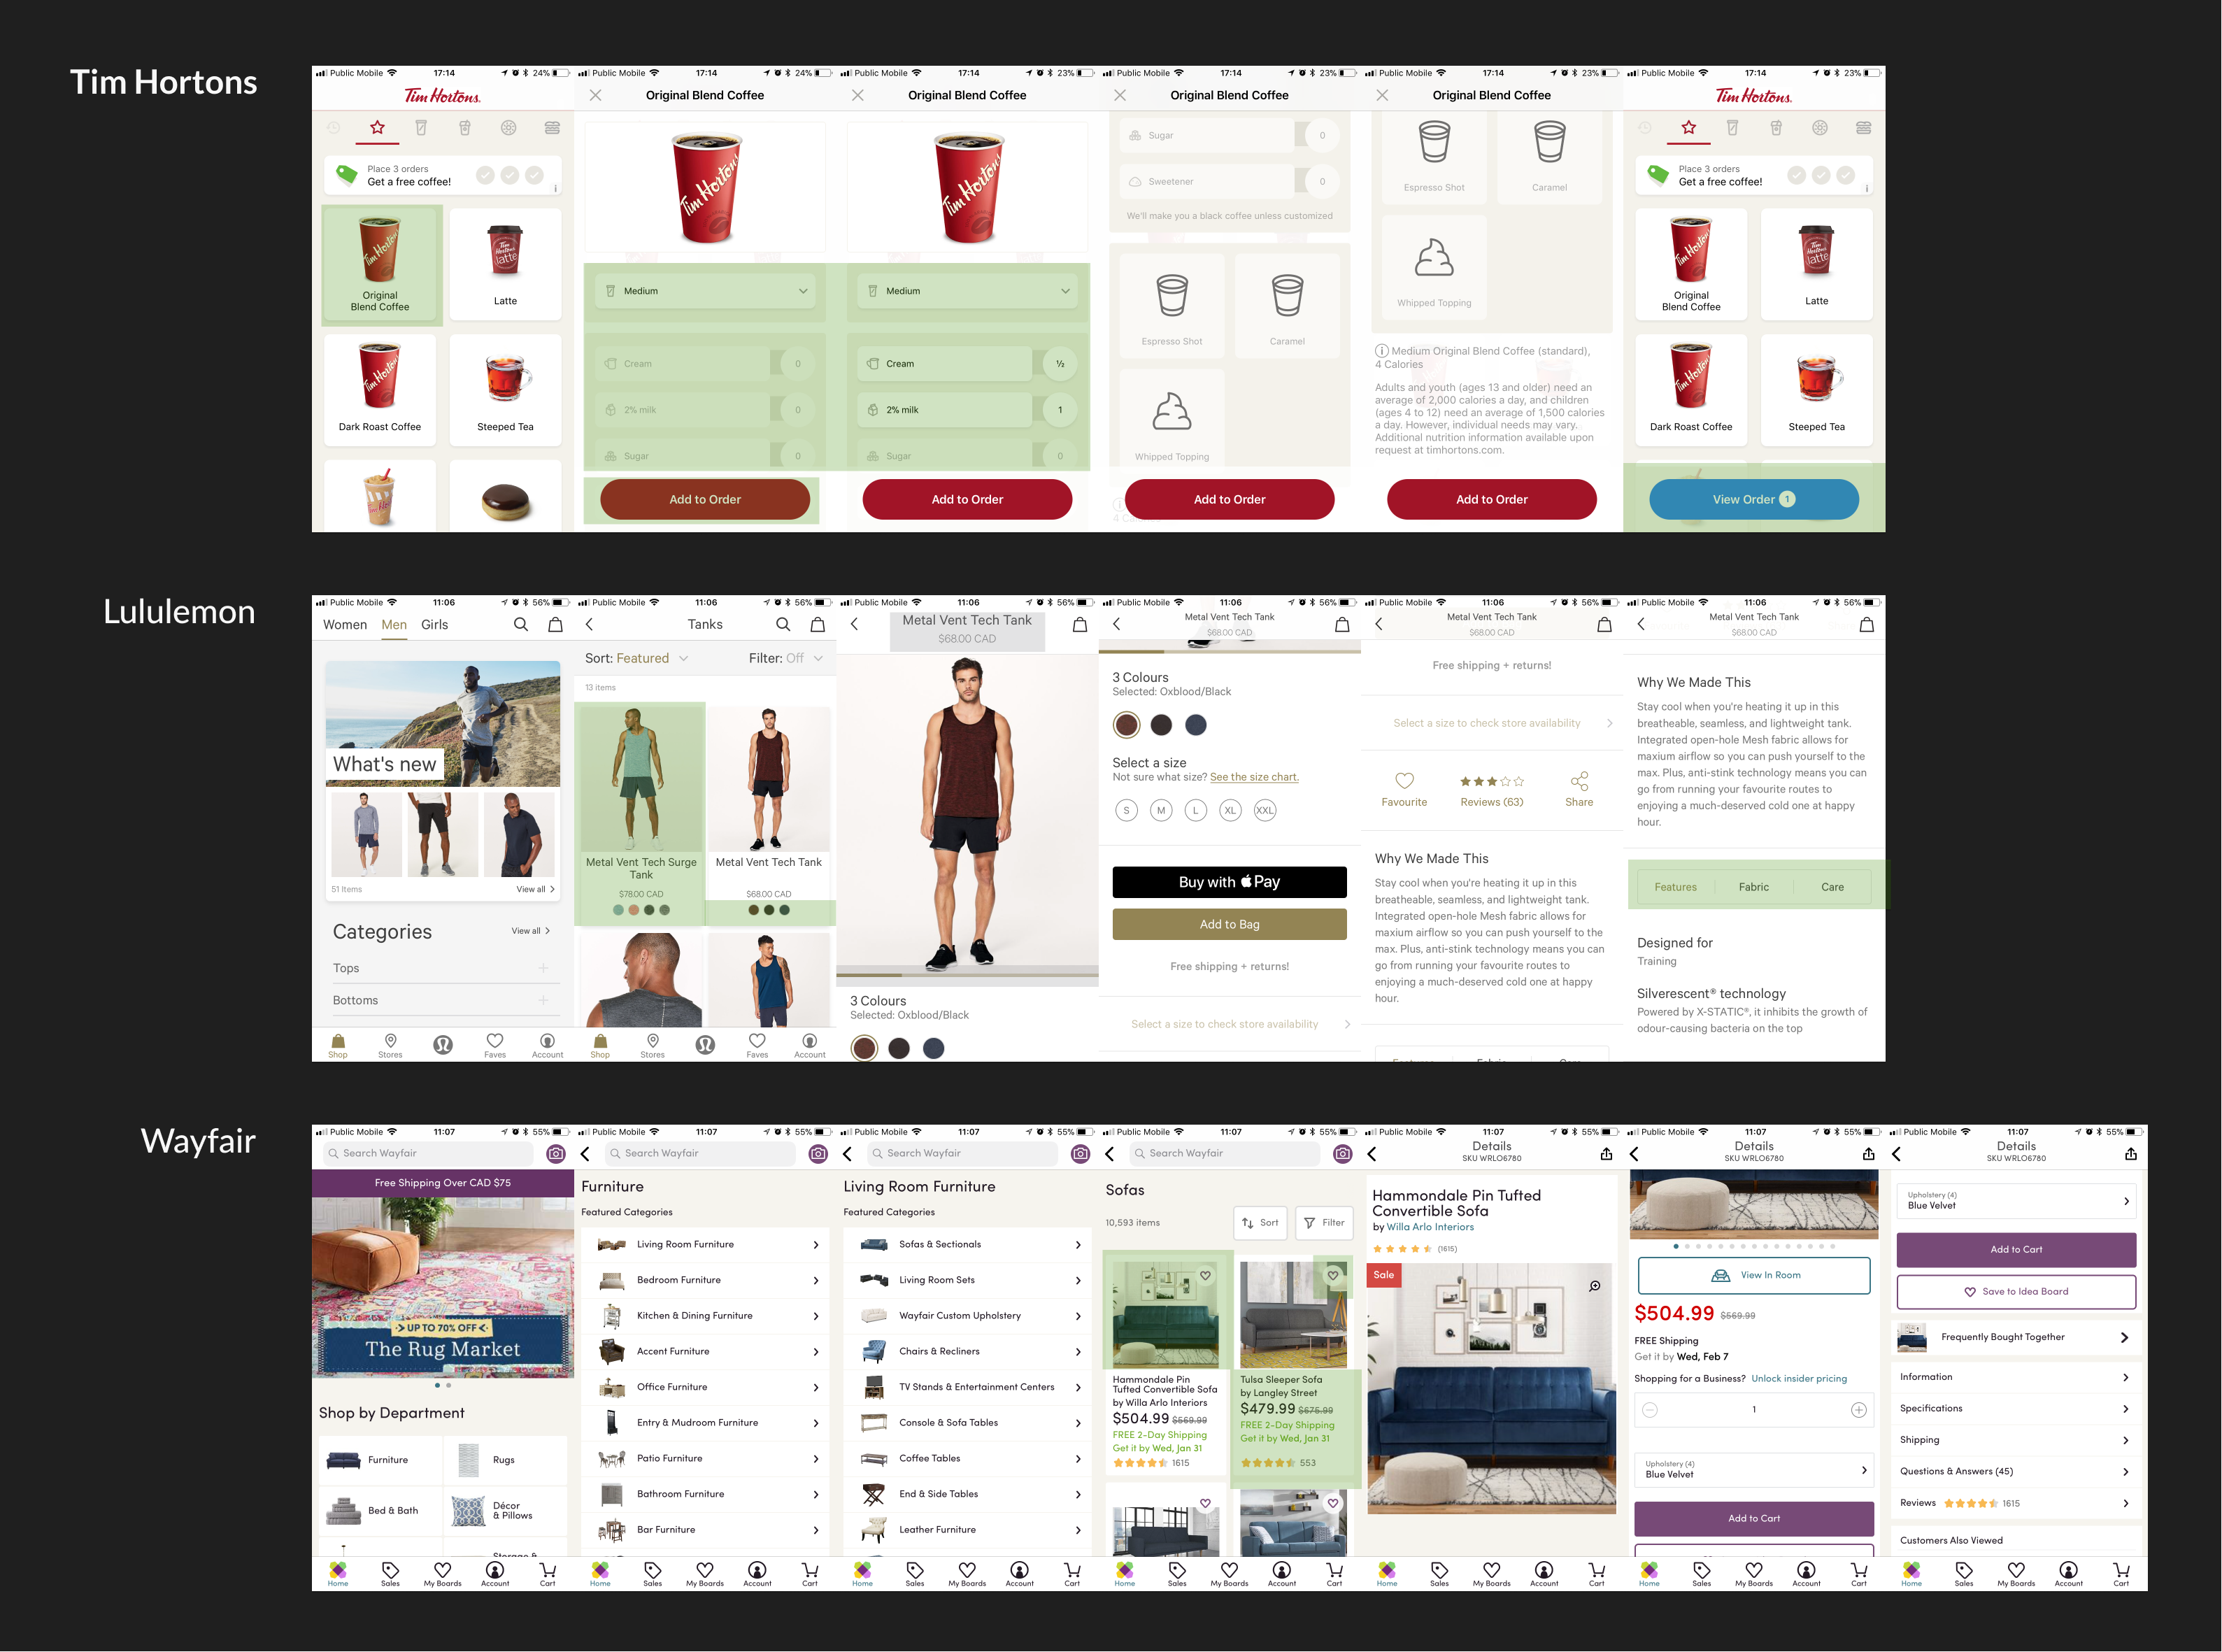 Market research on Tim Hortons, Lululemon, and Wayfair app